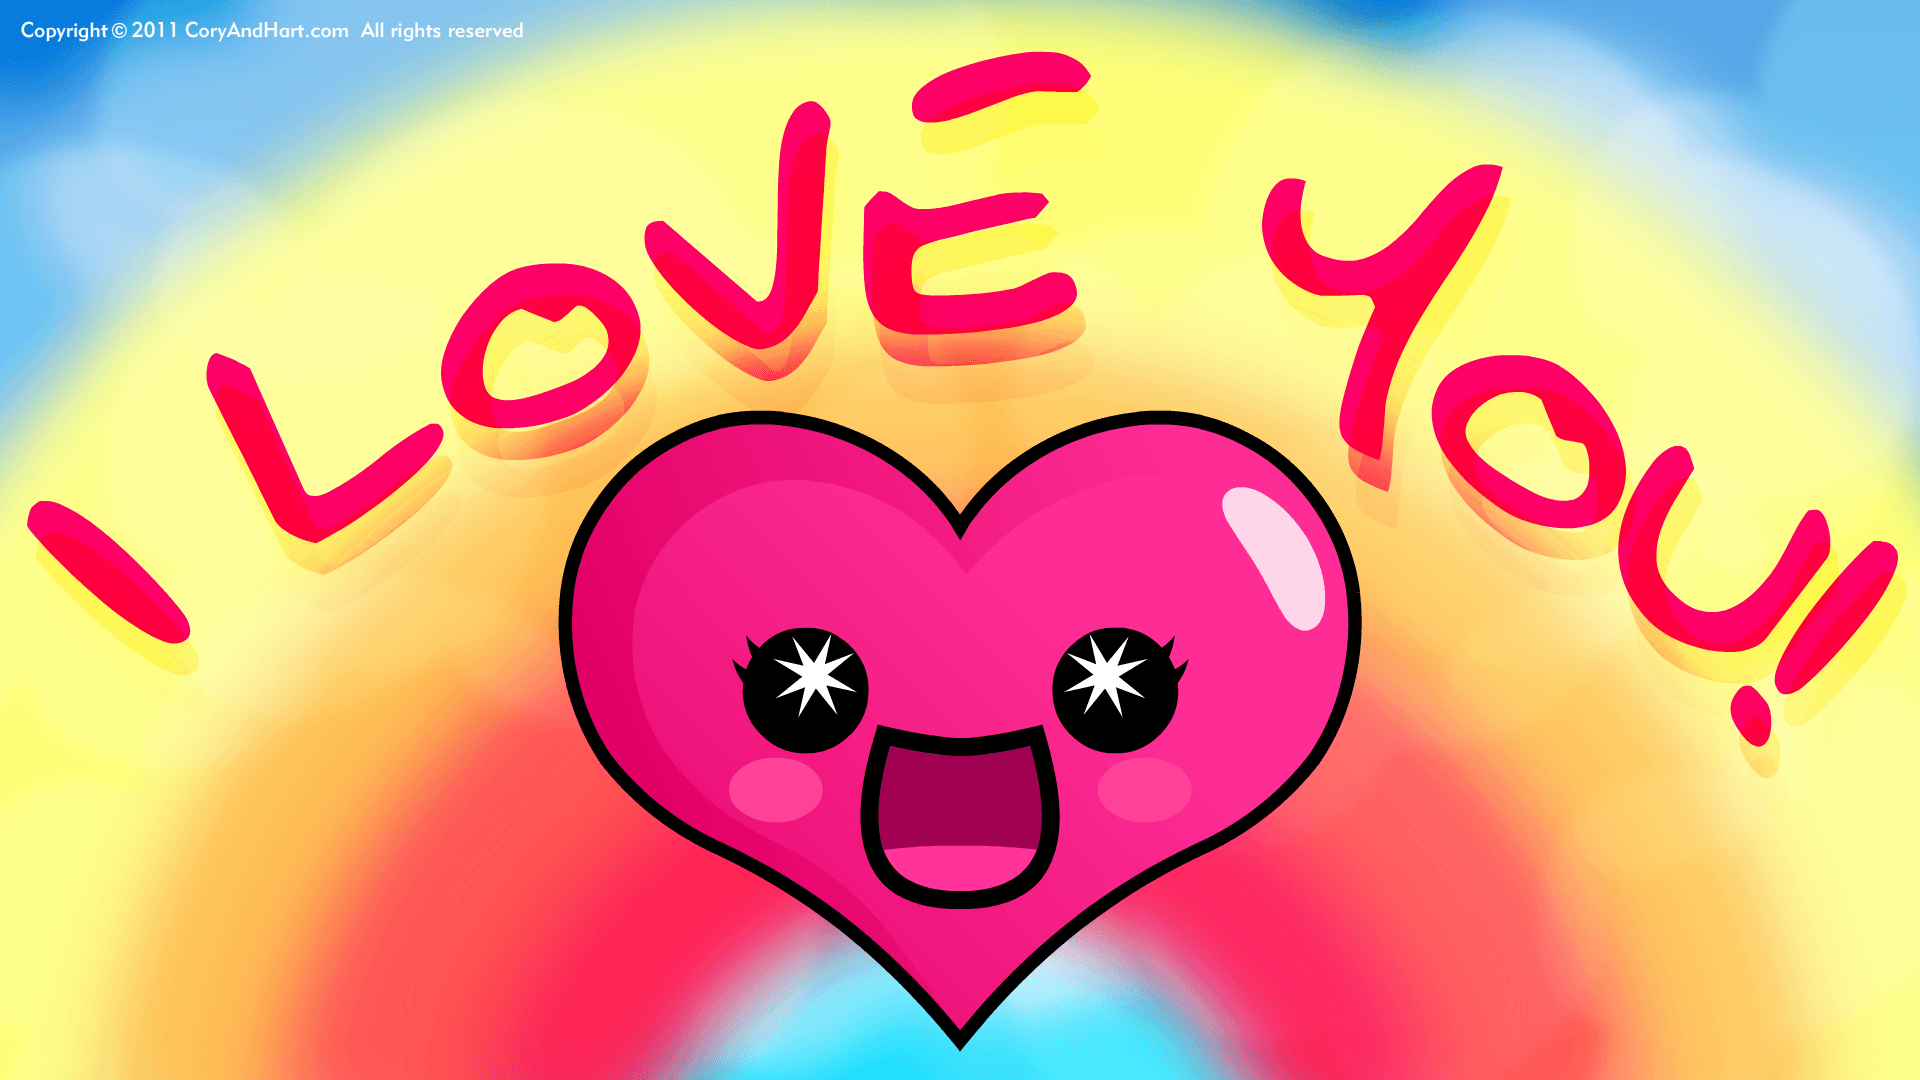 Sweet Hot Love Wallpaper : cute I Love You Wallpapers - Wallpaper cave